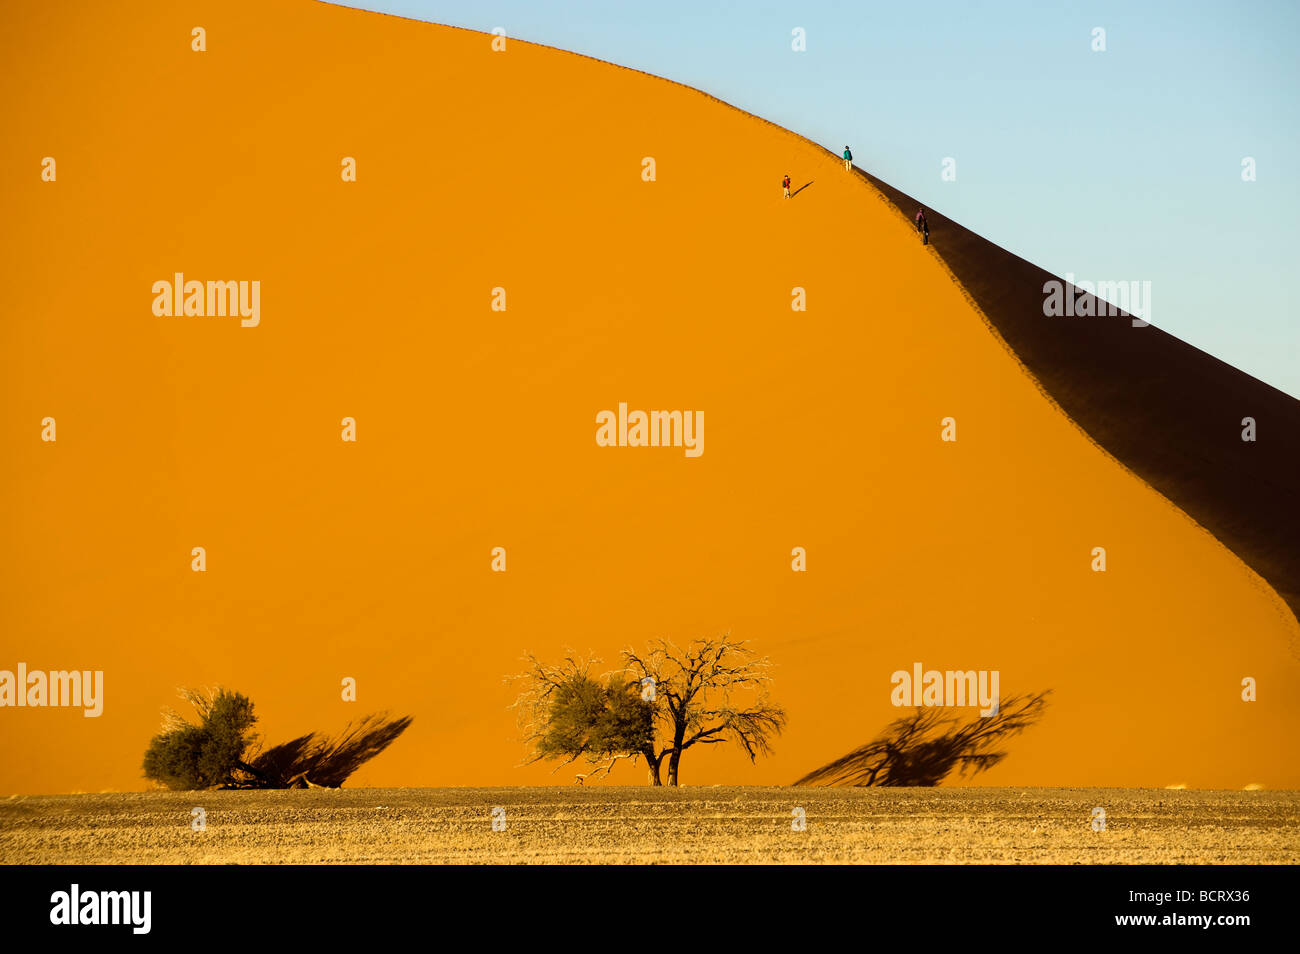 africa Namibia Sossusvlei dune sand bush tree dry dried shade form Vlei desert waste land wilderness waste cold - Stock Image